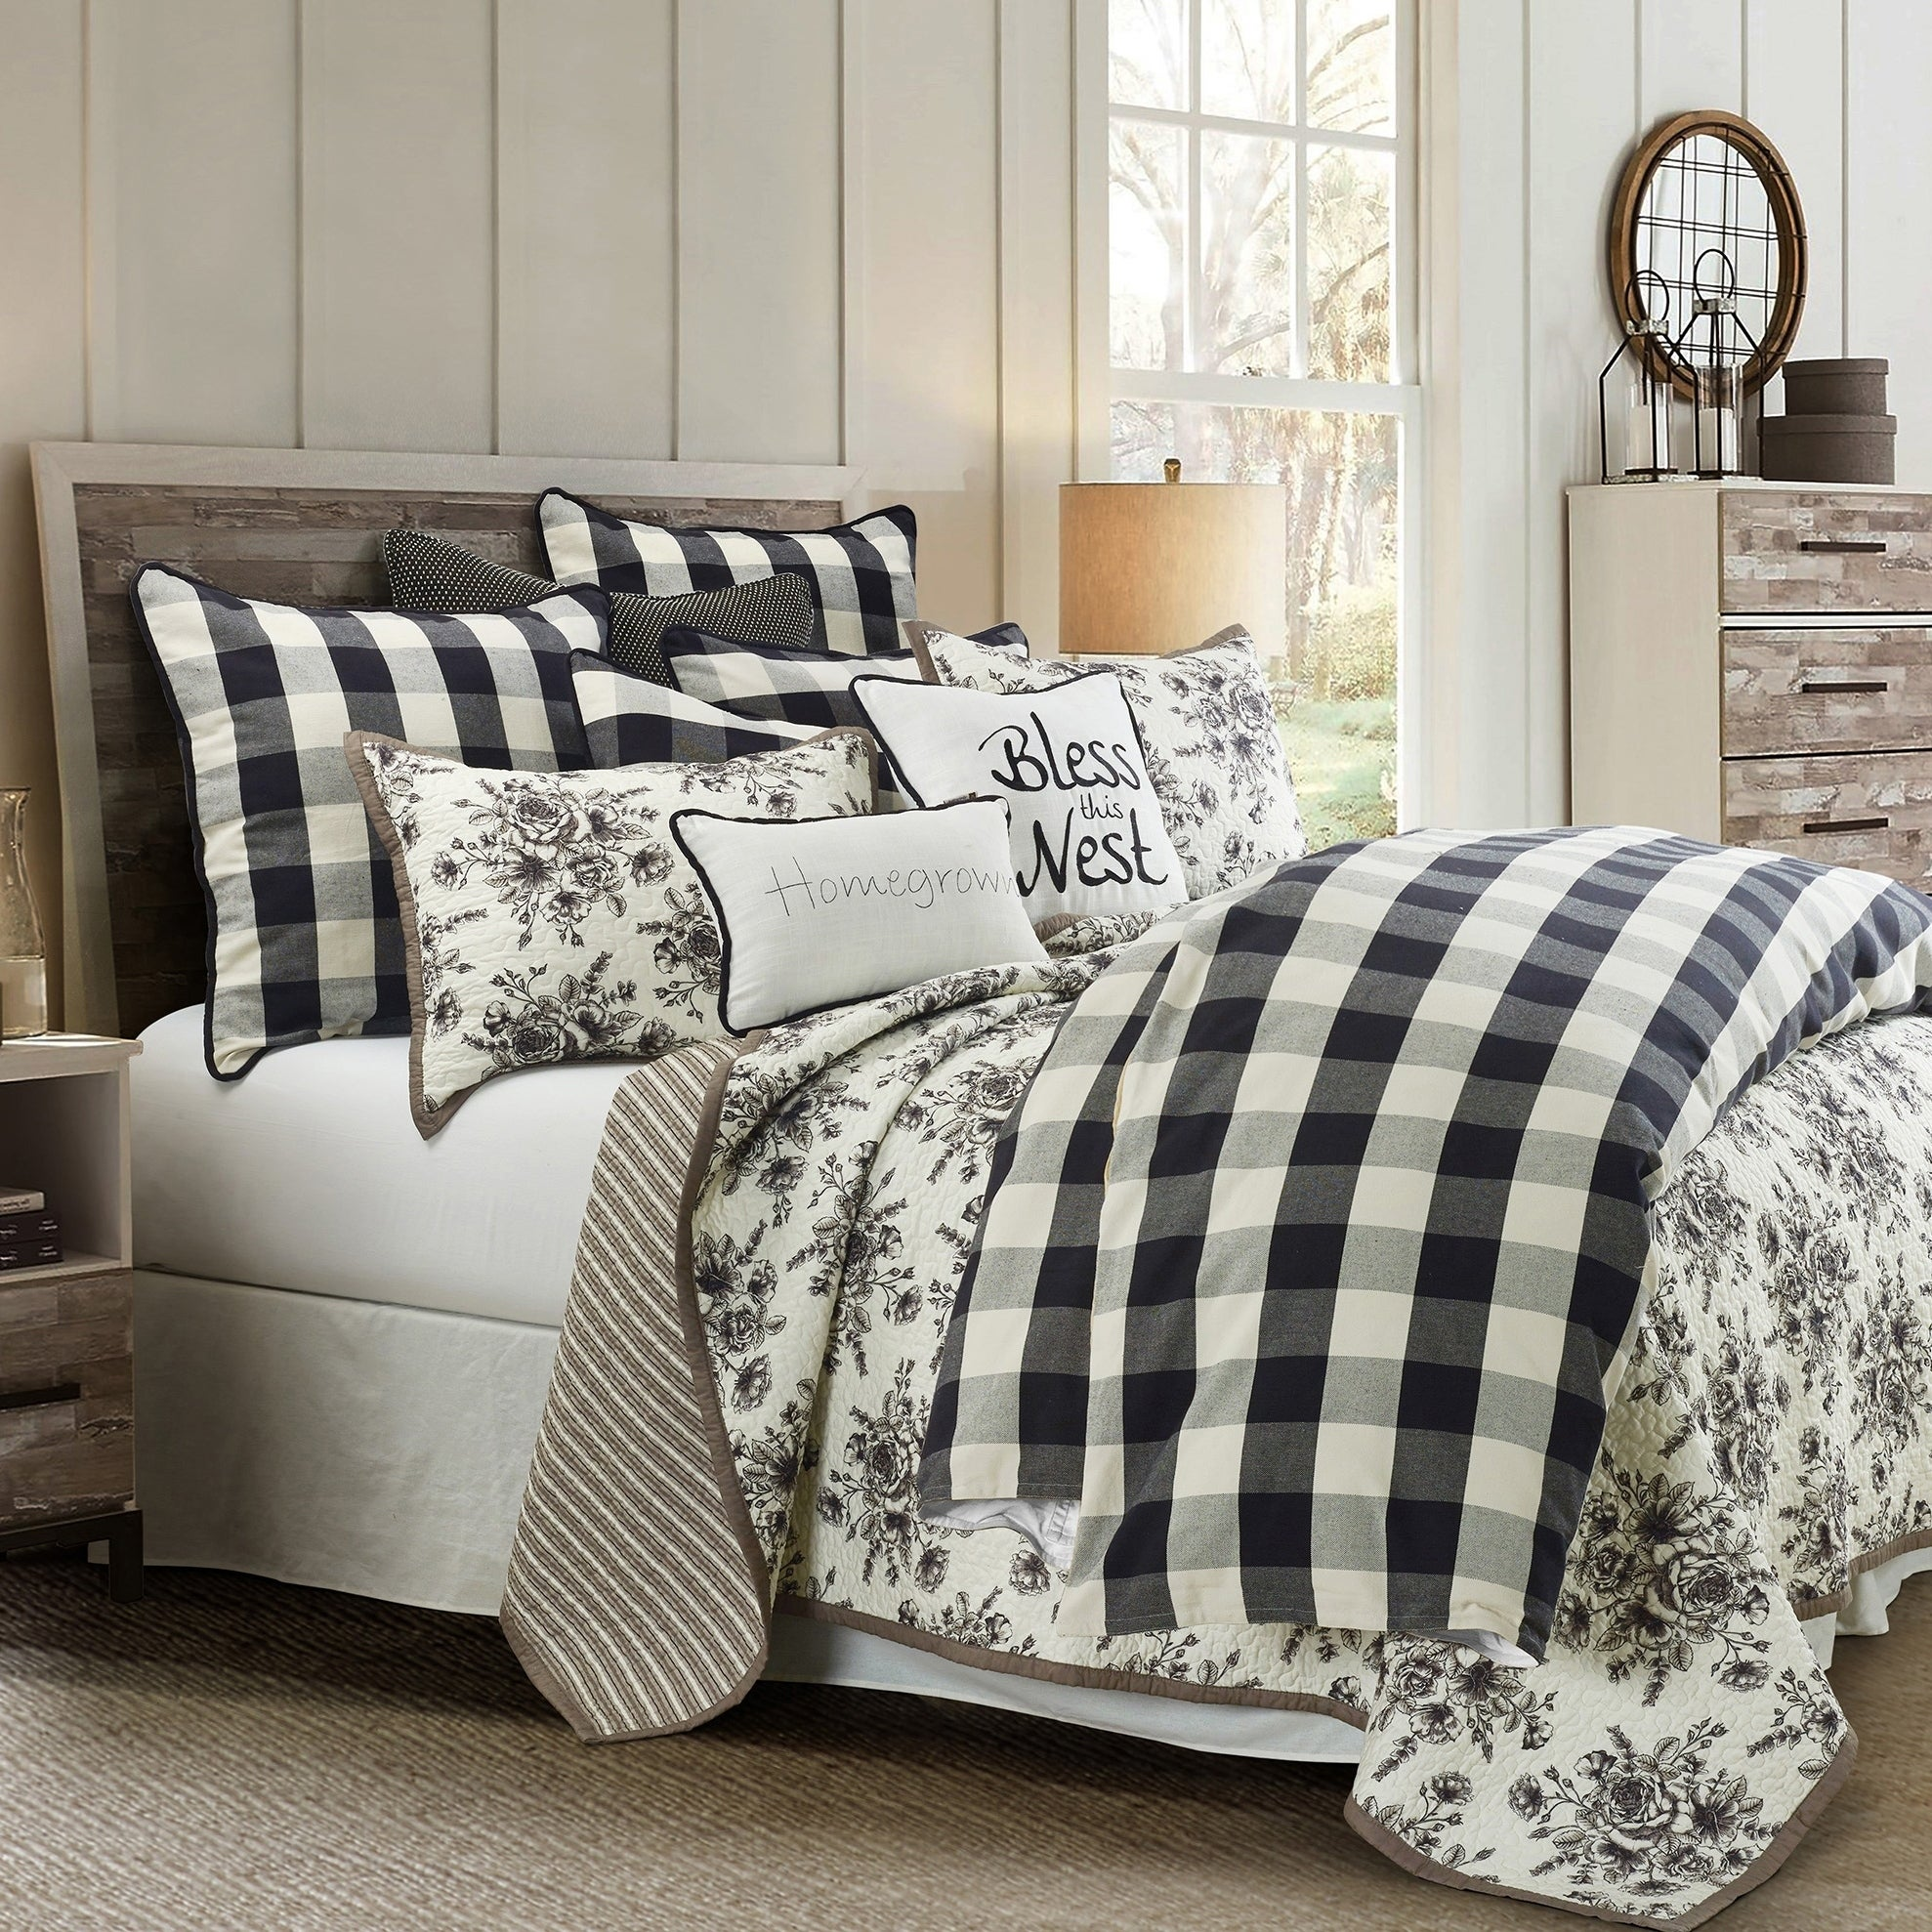 Hiend Accents Camille Comforter Set Twin Black White 3pc Overstock 28654975